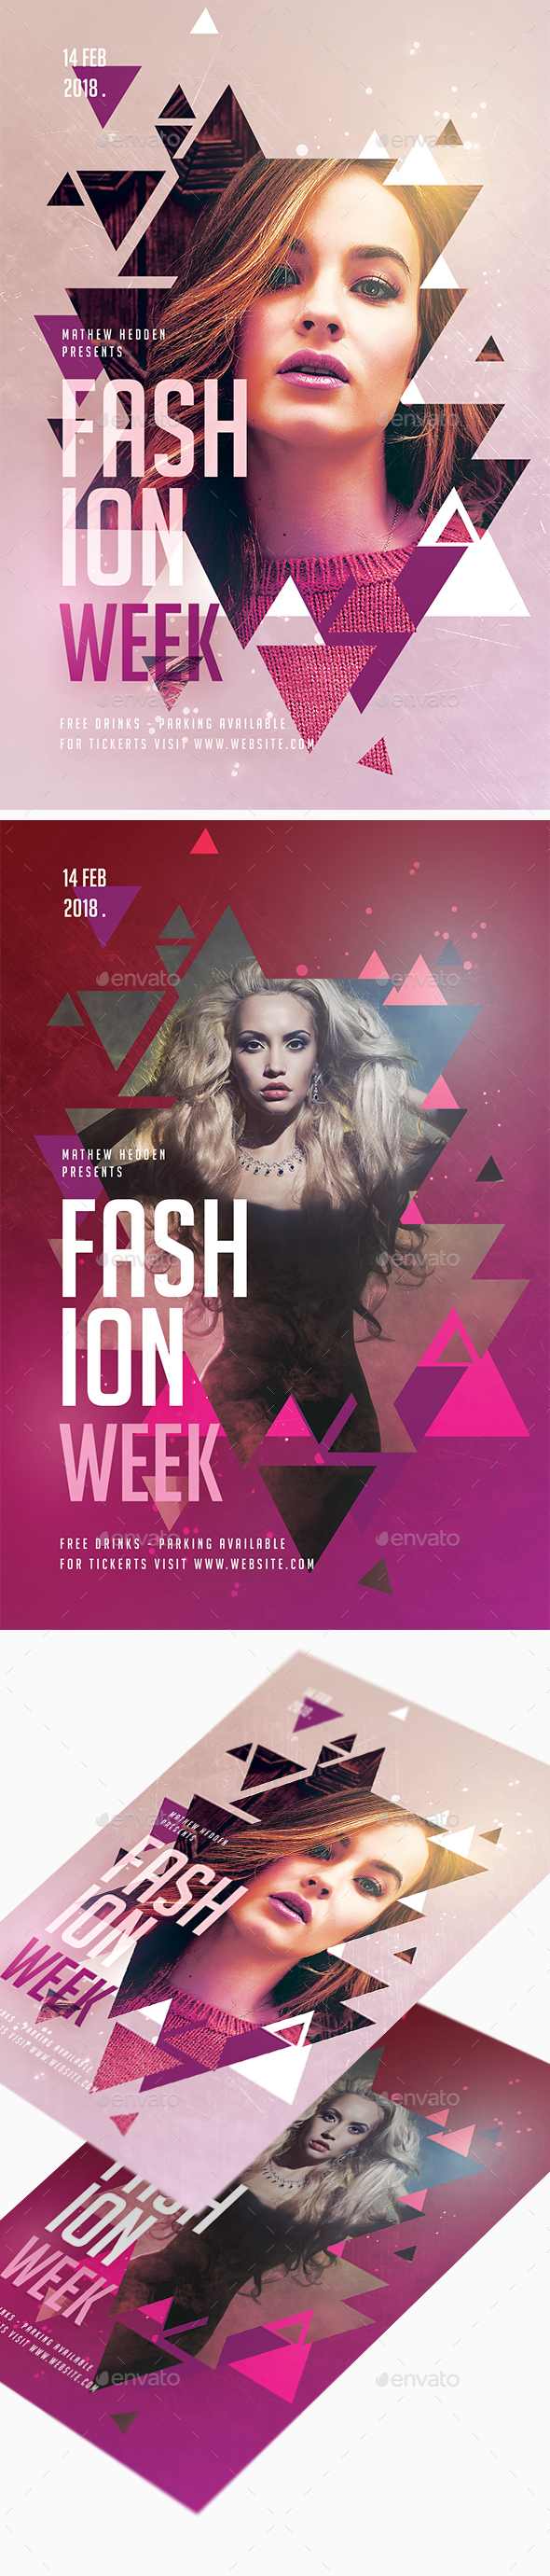 Fashion Week Flyer - Clubs & Parties Events